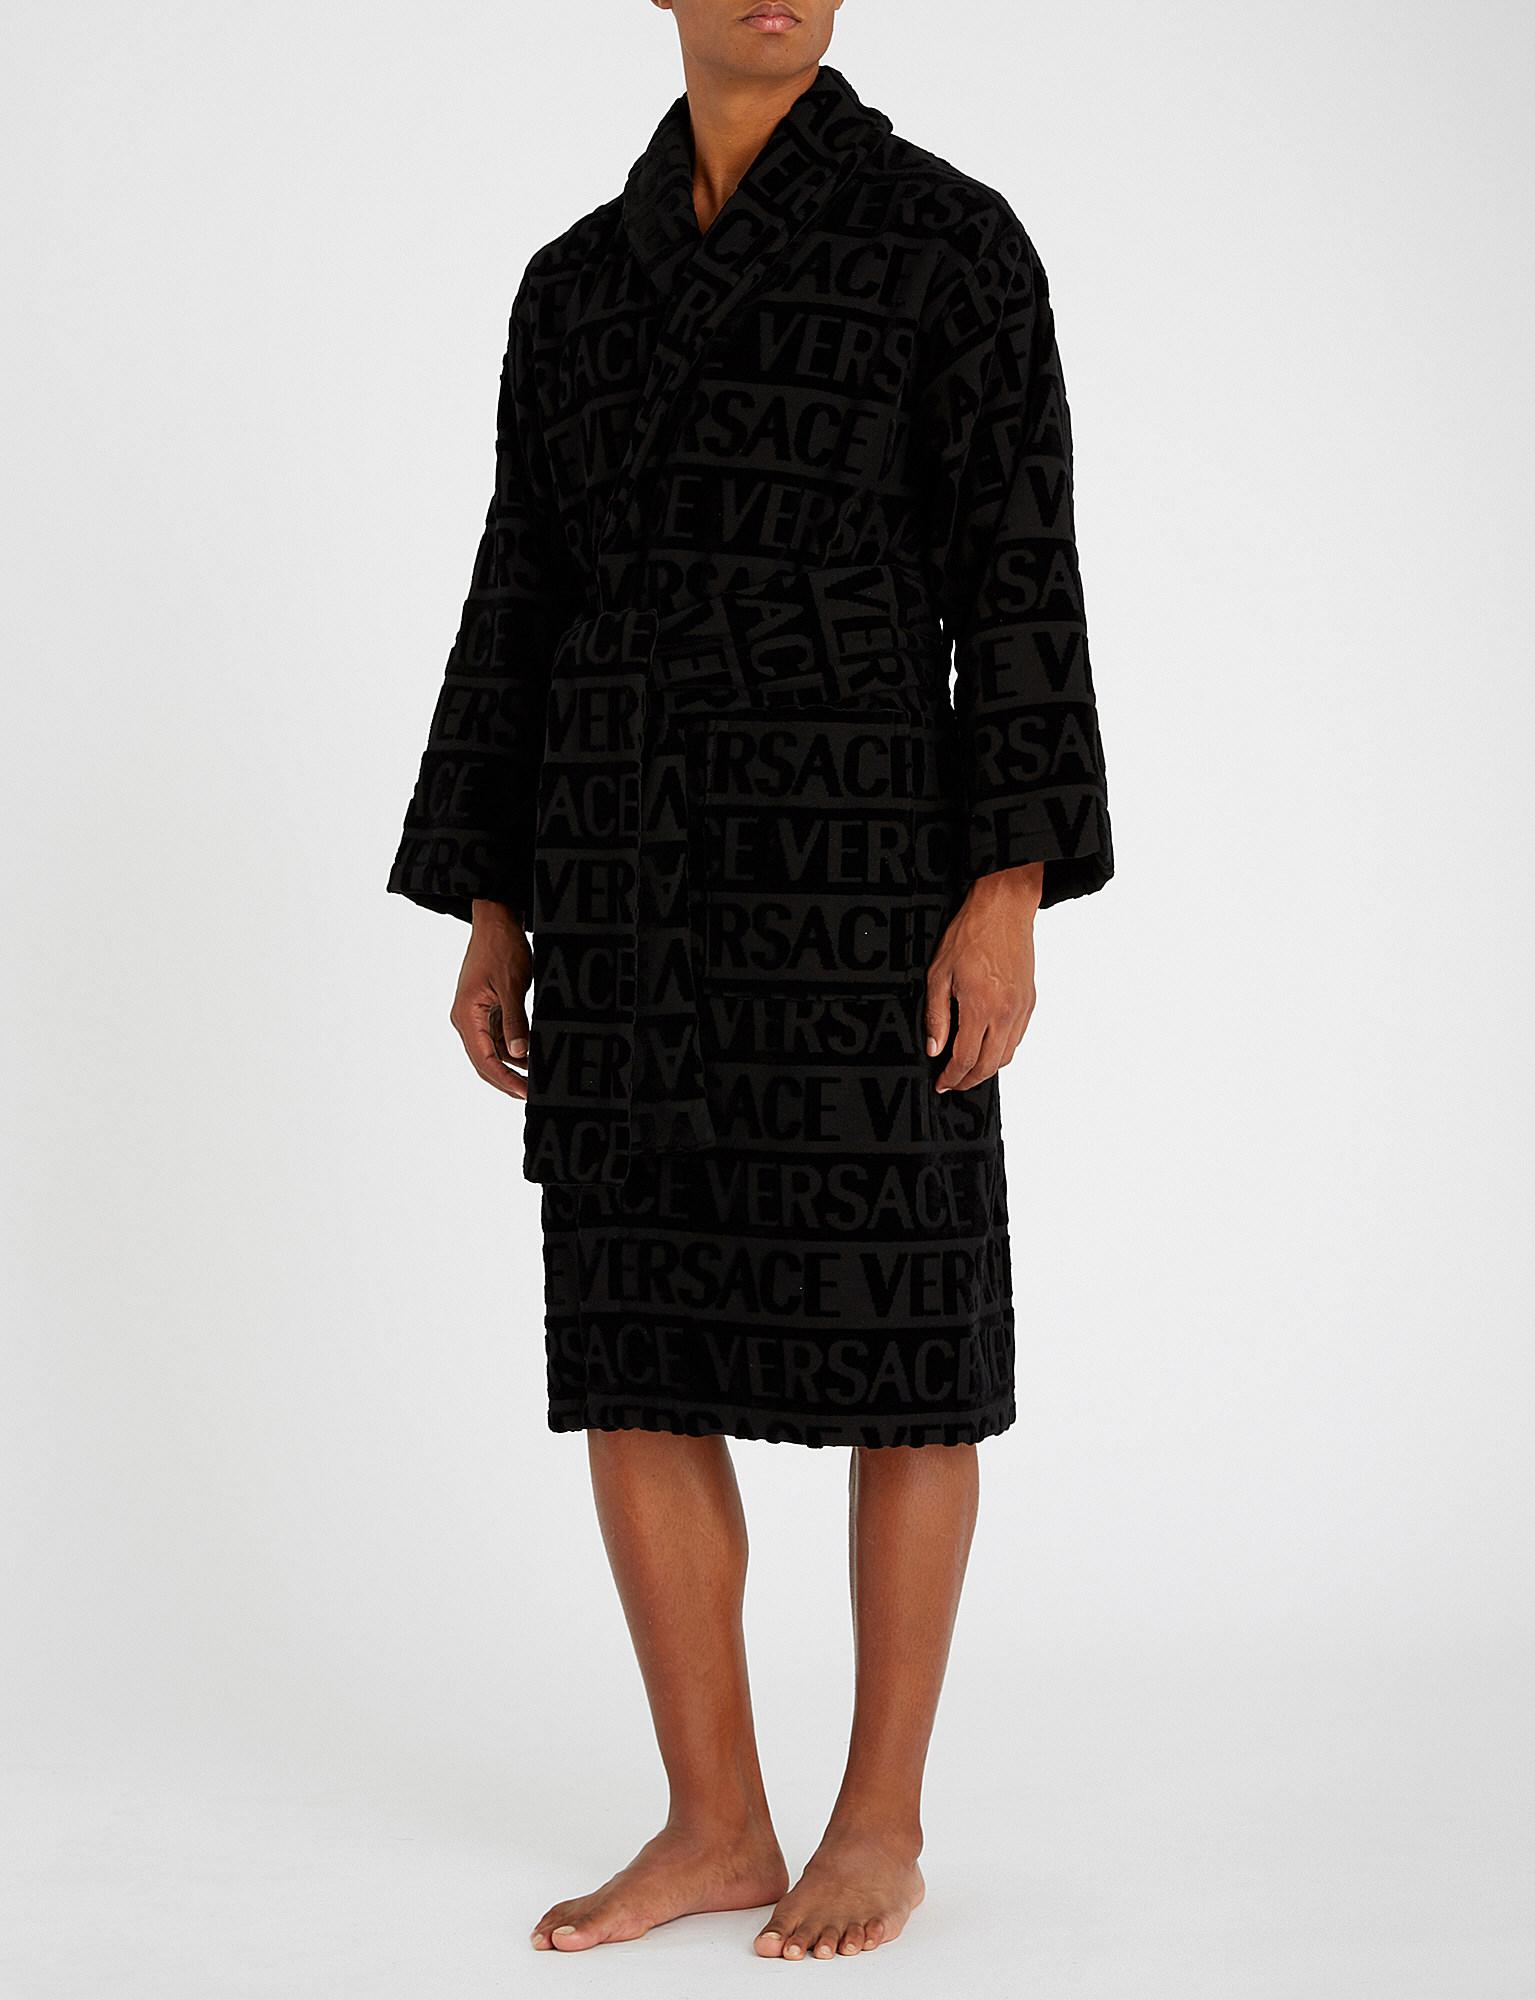 Versace Logo Jacquard Cotton Dressing Gown In Black For Men Lyst